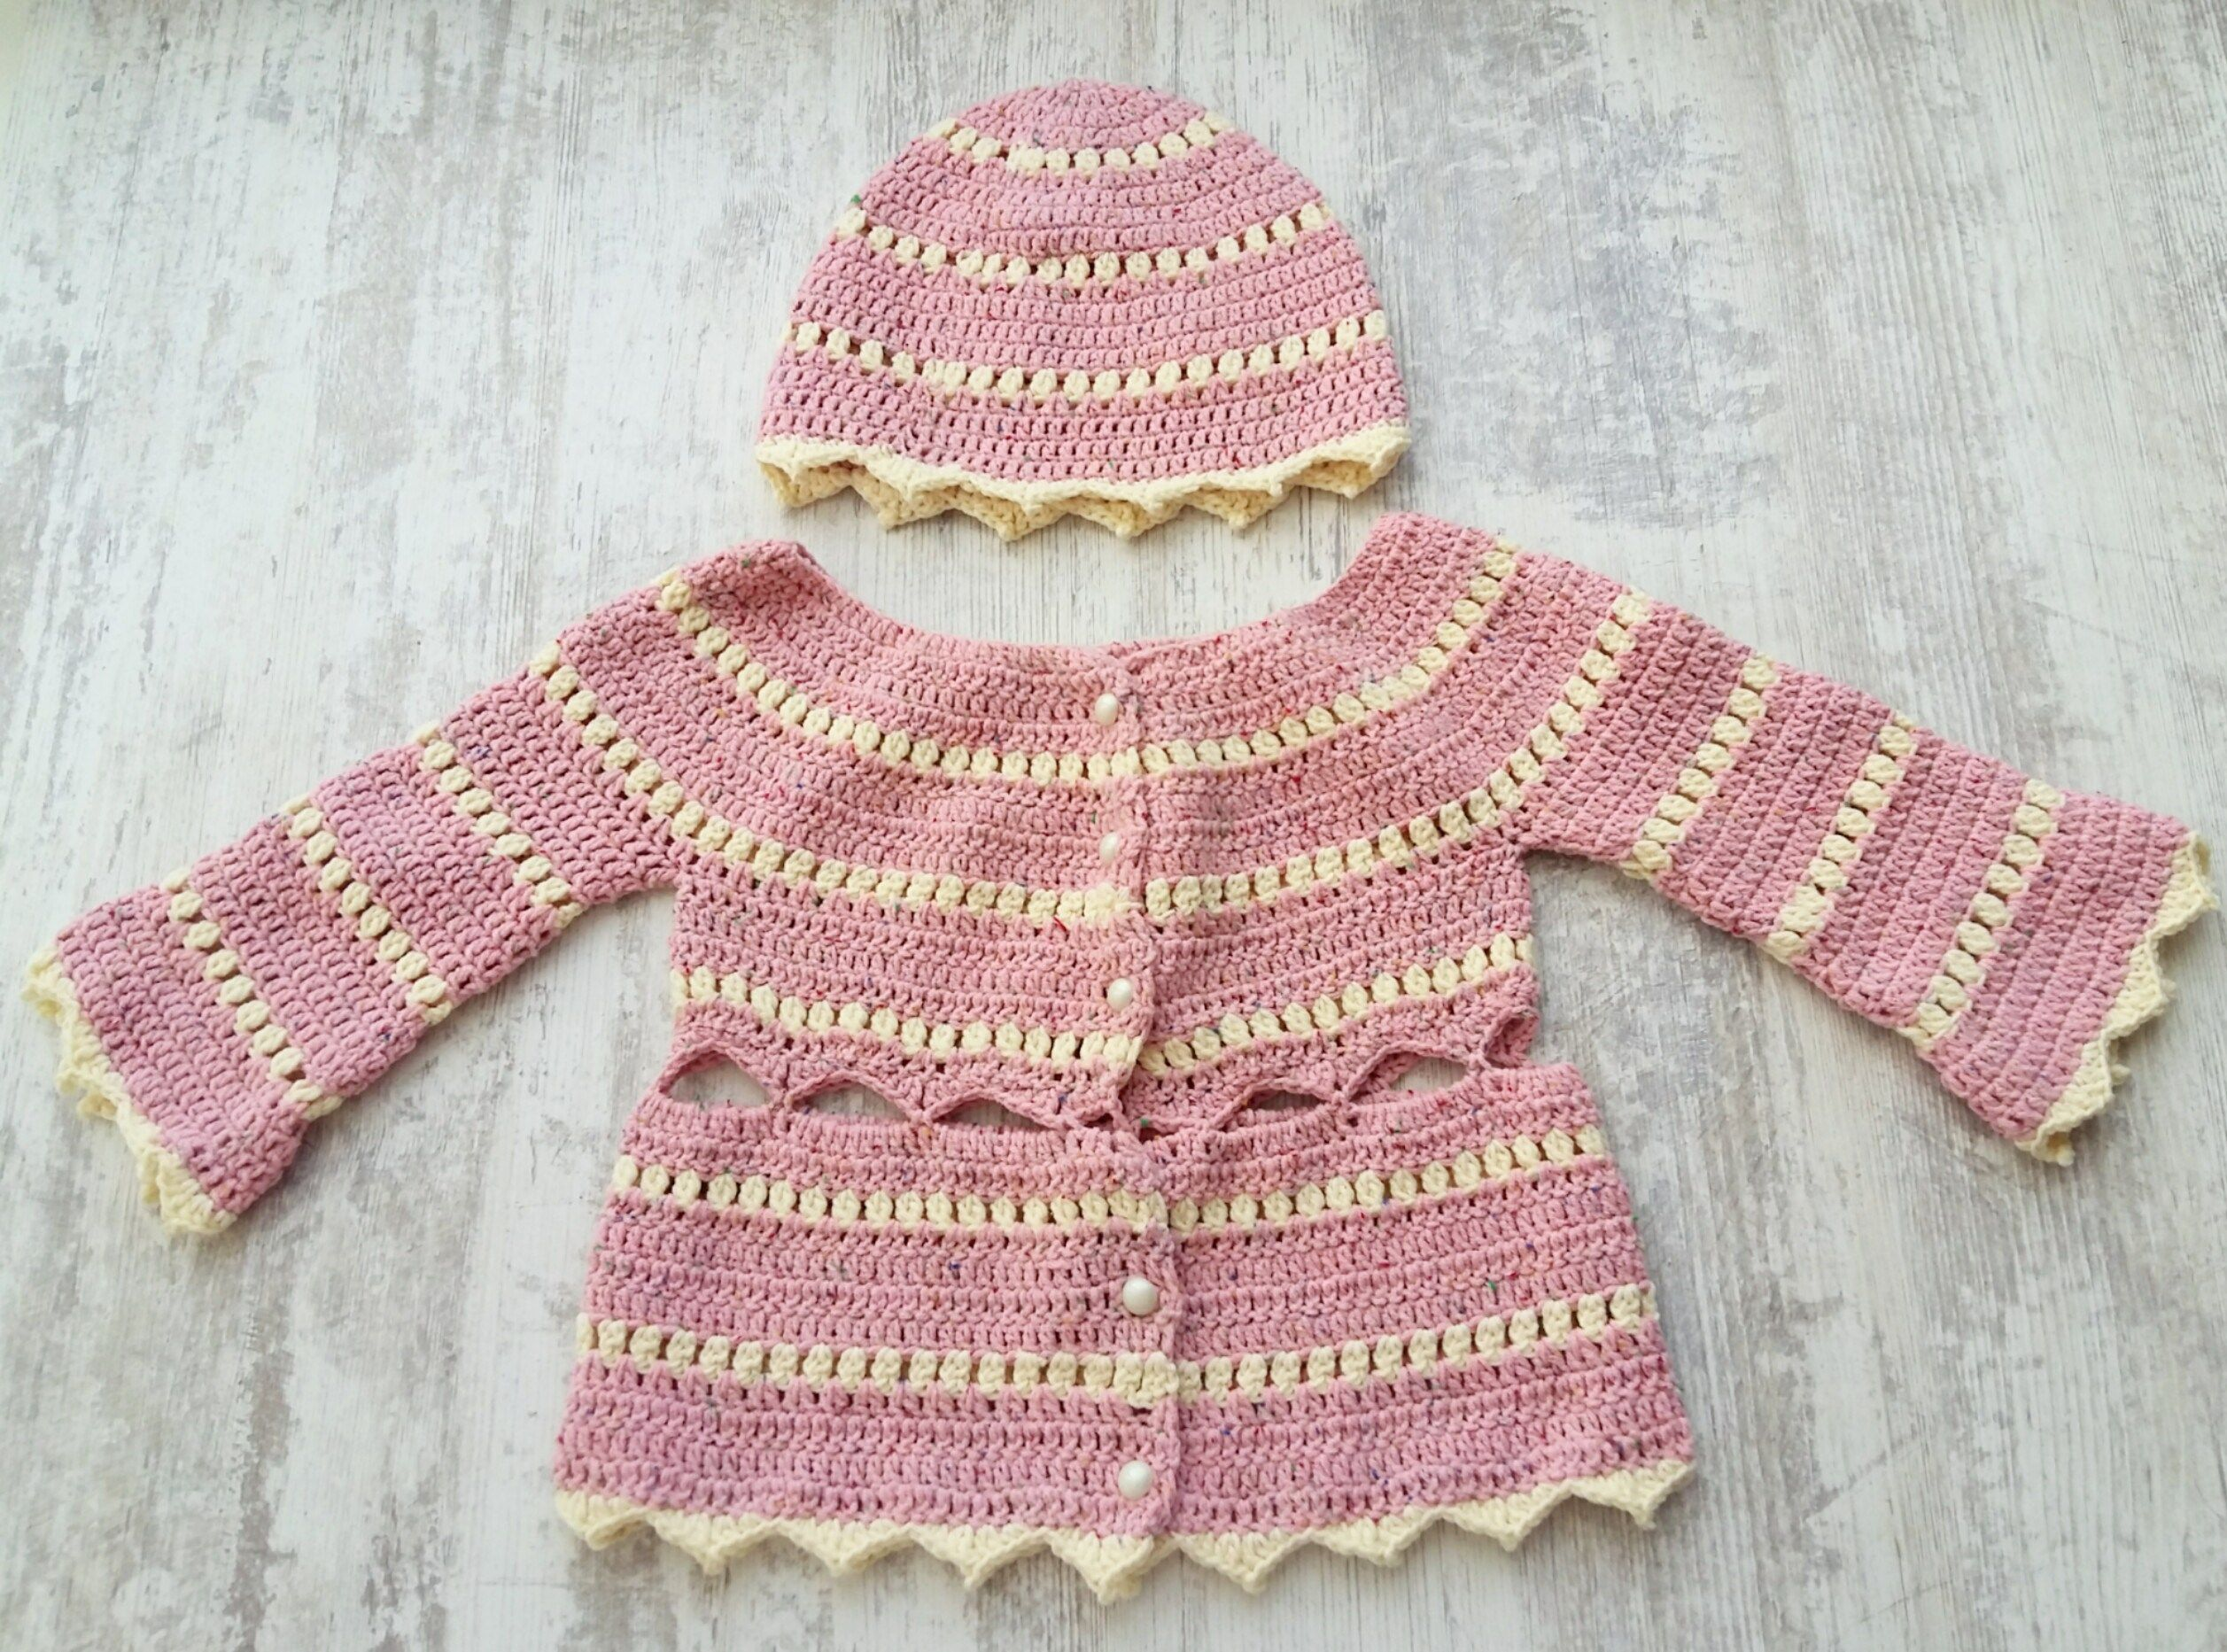 Crochet baby jacket free pattern | baby sweater | Pinterest